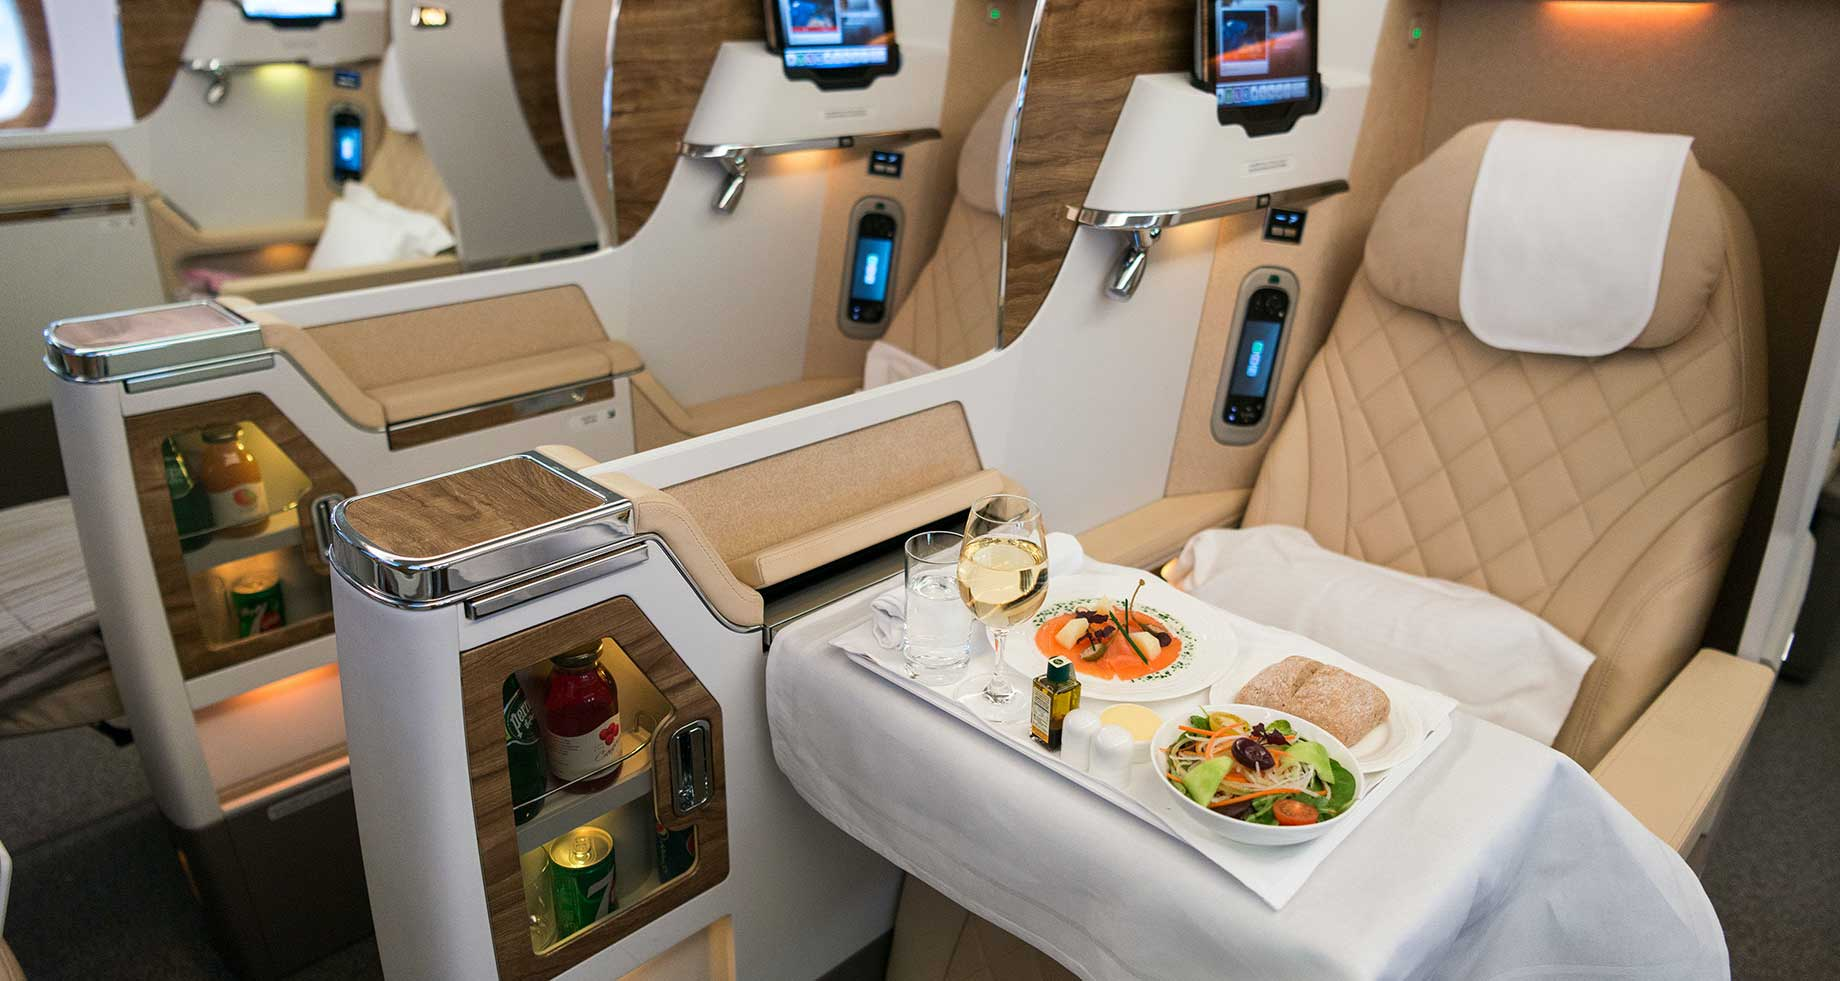 Emirates business class seat, with meal presented on tray table.